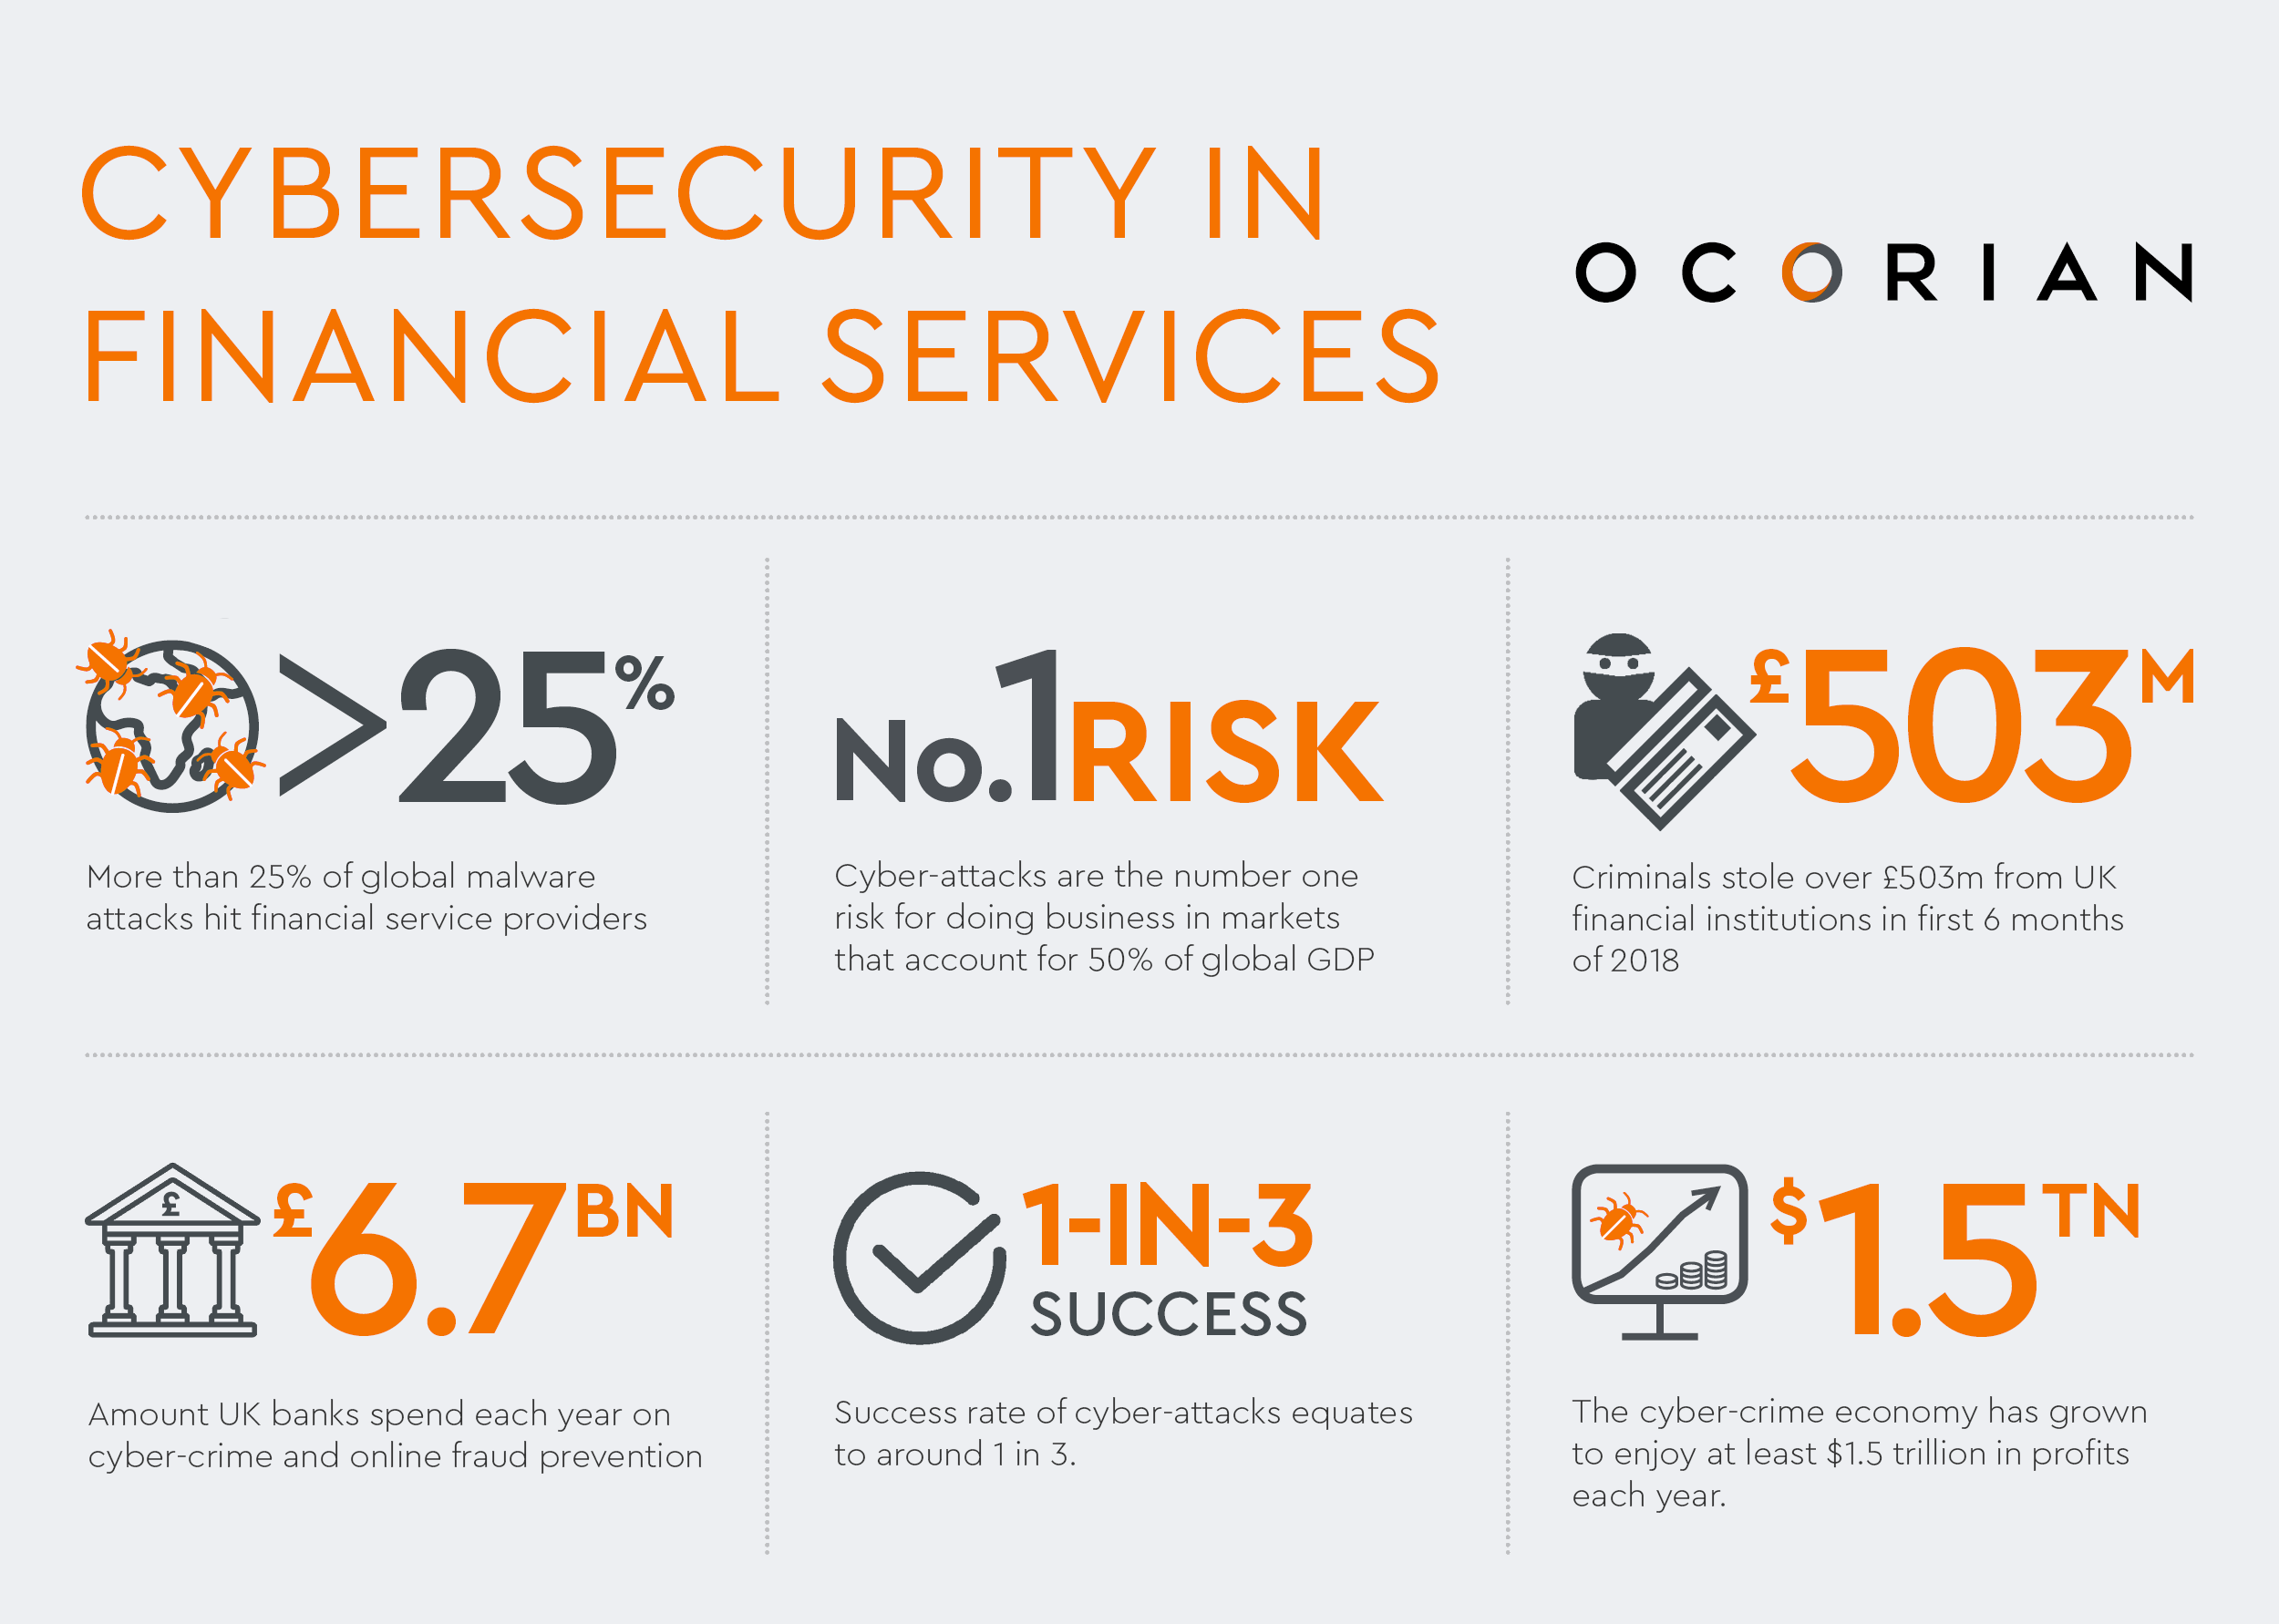 Cybersecurity in financial services